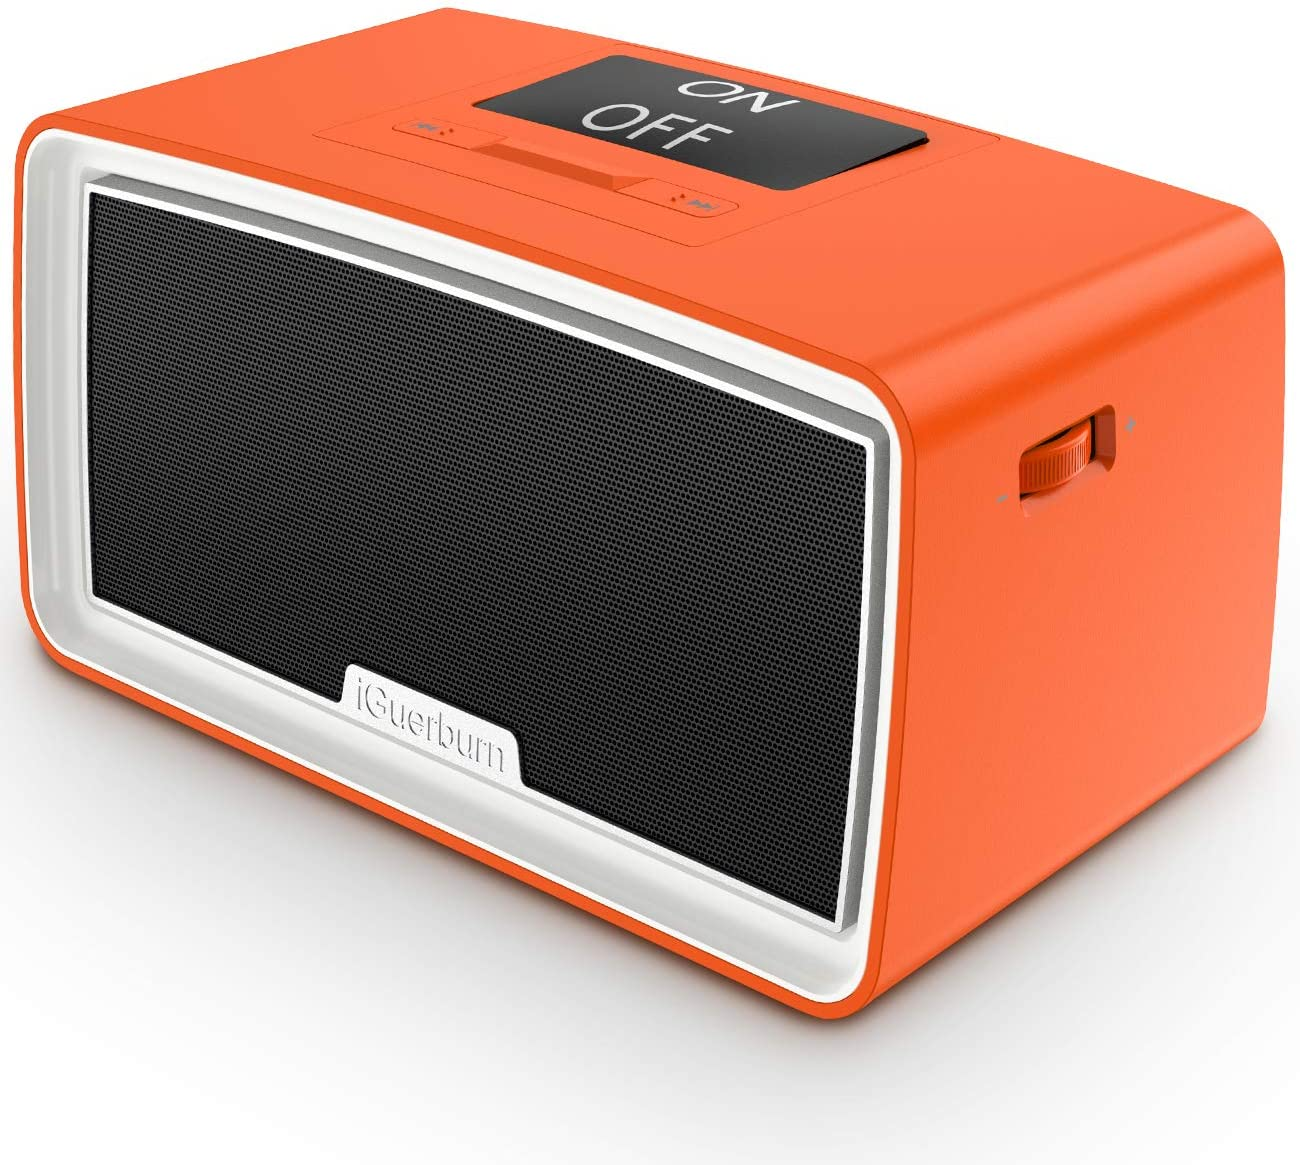 iGuerburn Upgraded 16GB Simple Music MP3 Player Dementia Products Gifts for People with Dementia Patients Alzheimers Music Box for Elderly Seniors 9.4 x 4.9 x 4.7 inches (Orange)